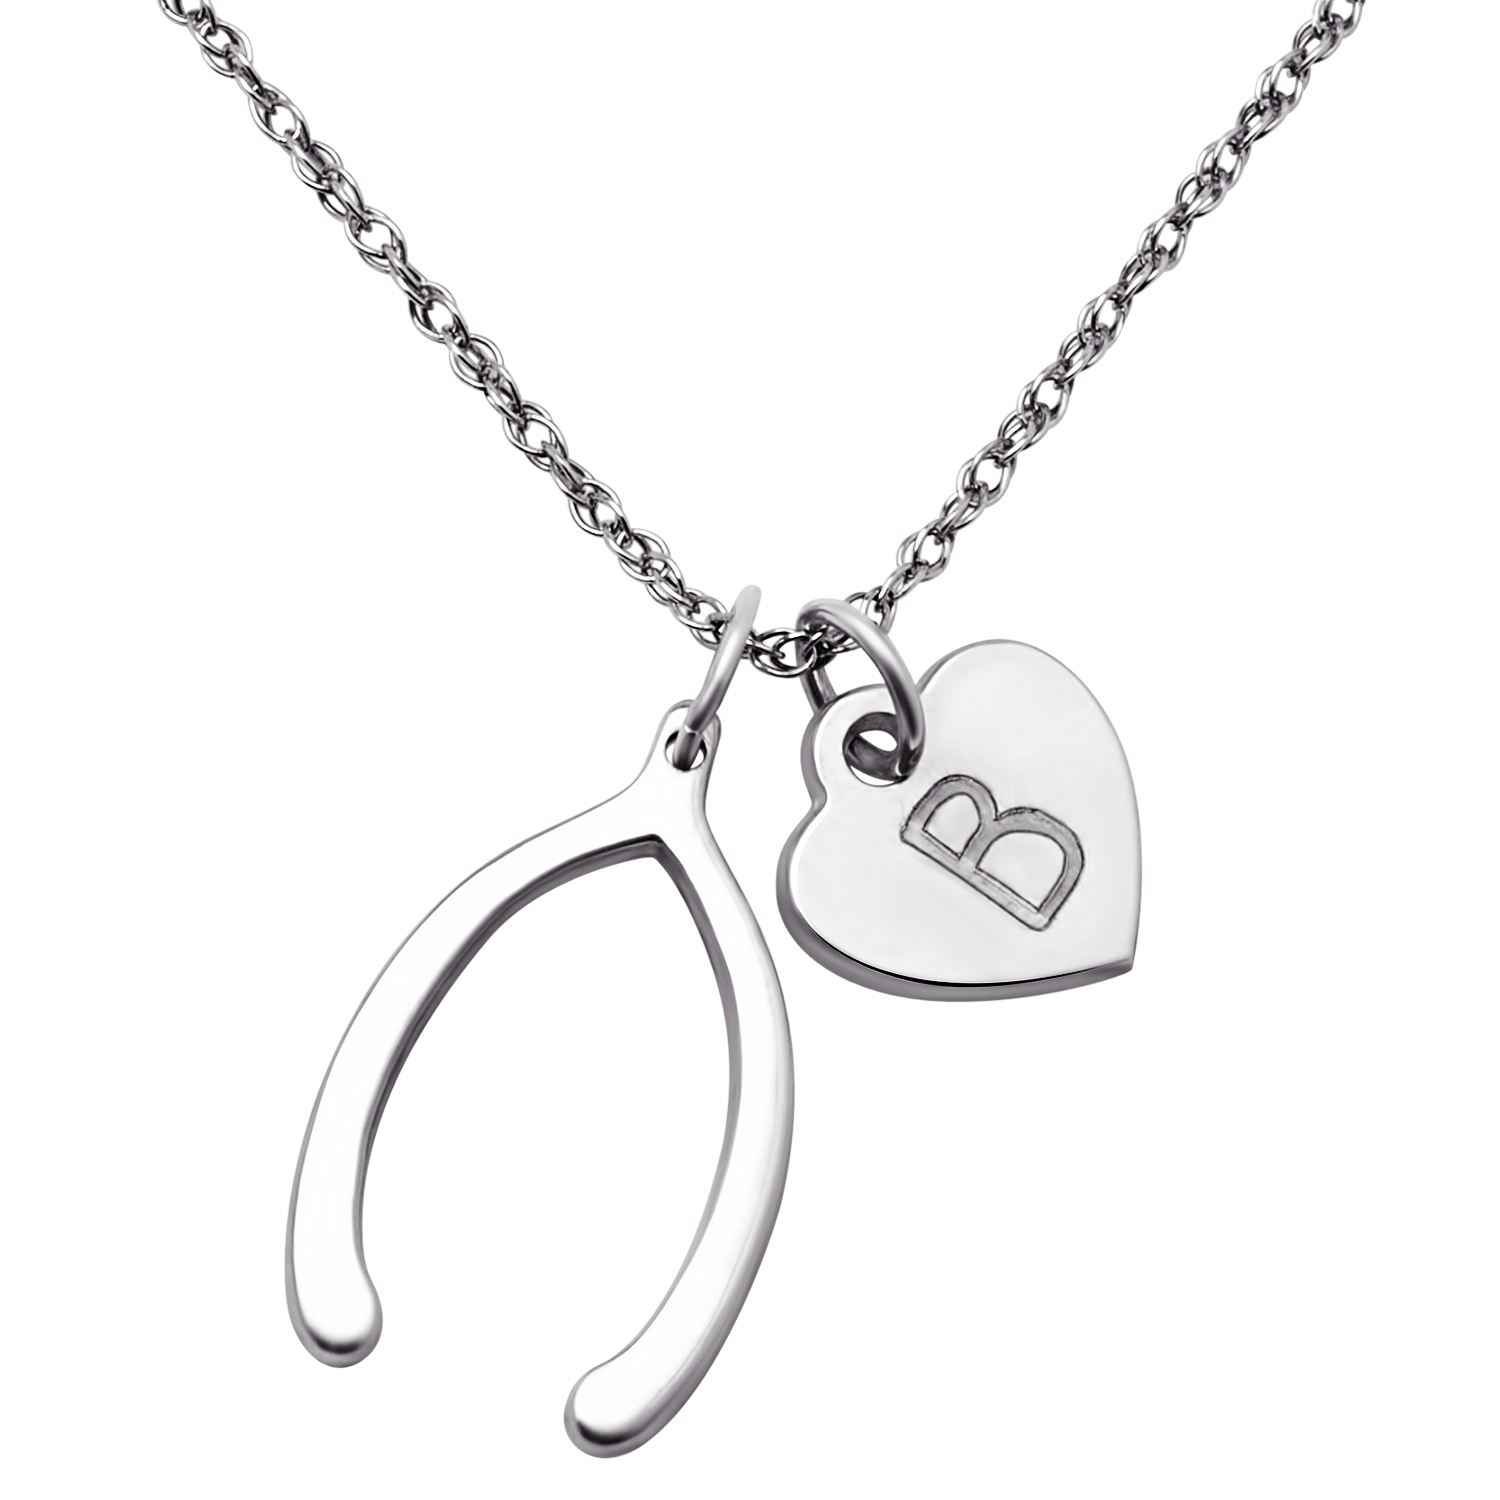 Premium Sterling Silver Wishbone And Initial Heart Necklace Regarding Most Current Polished Wishbone Necklaces (View 15 of 25)